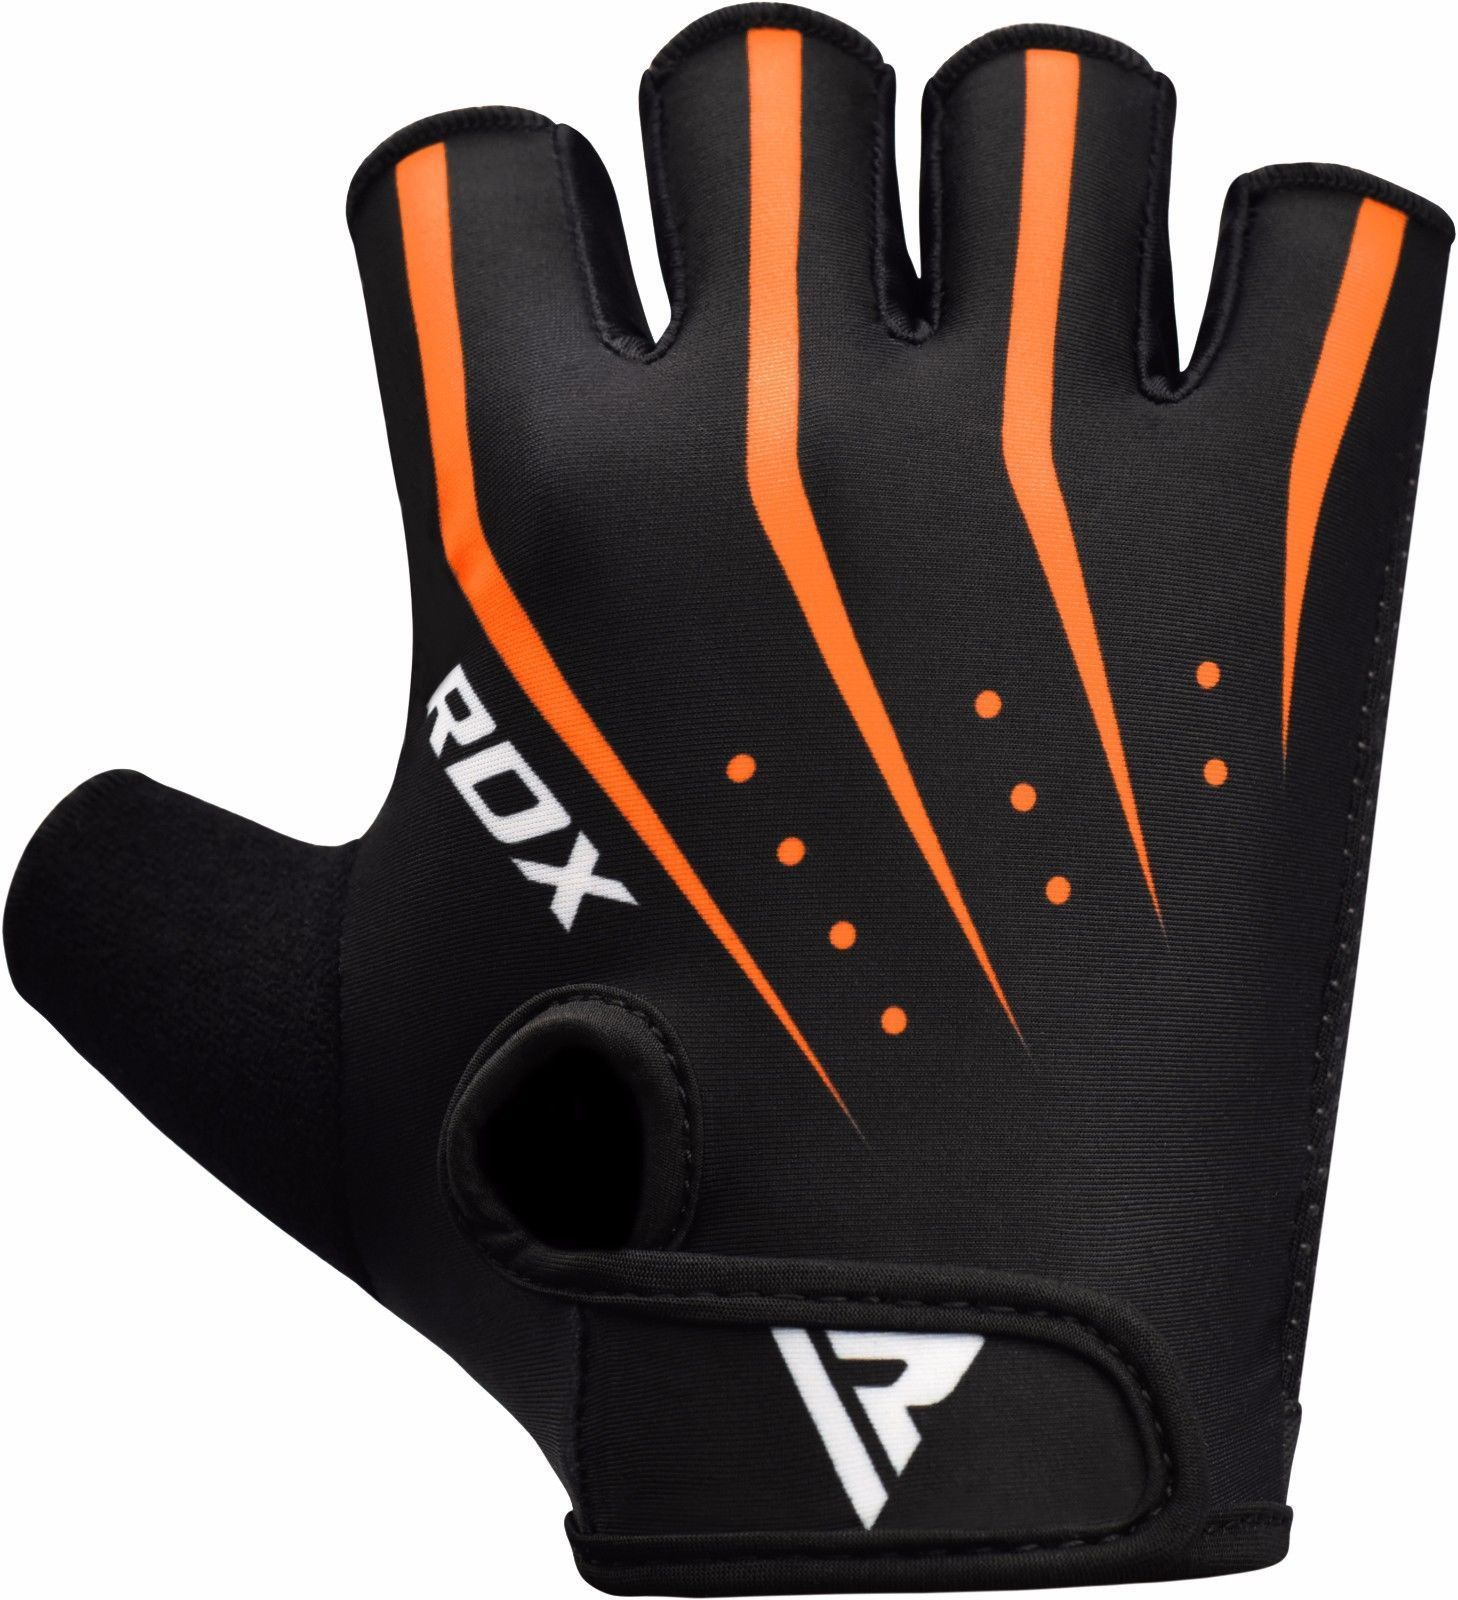 RDX WEIGHT LIFTING GYM GLOVES 3